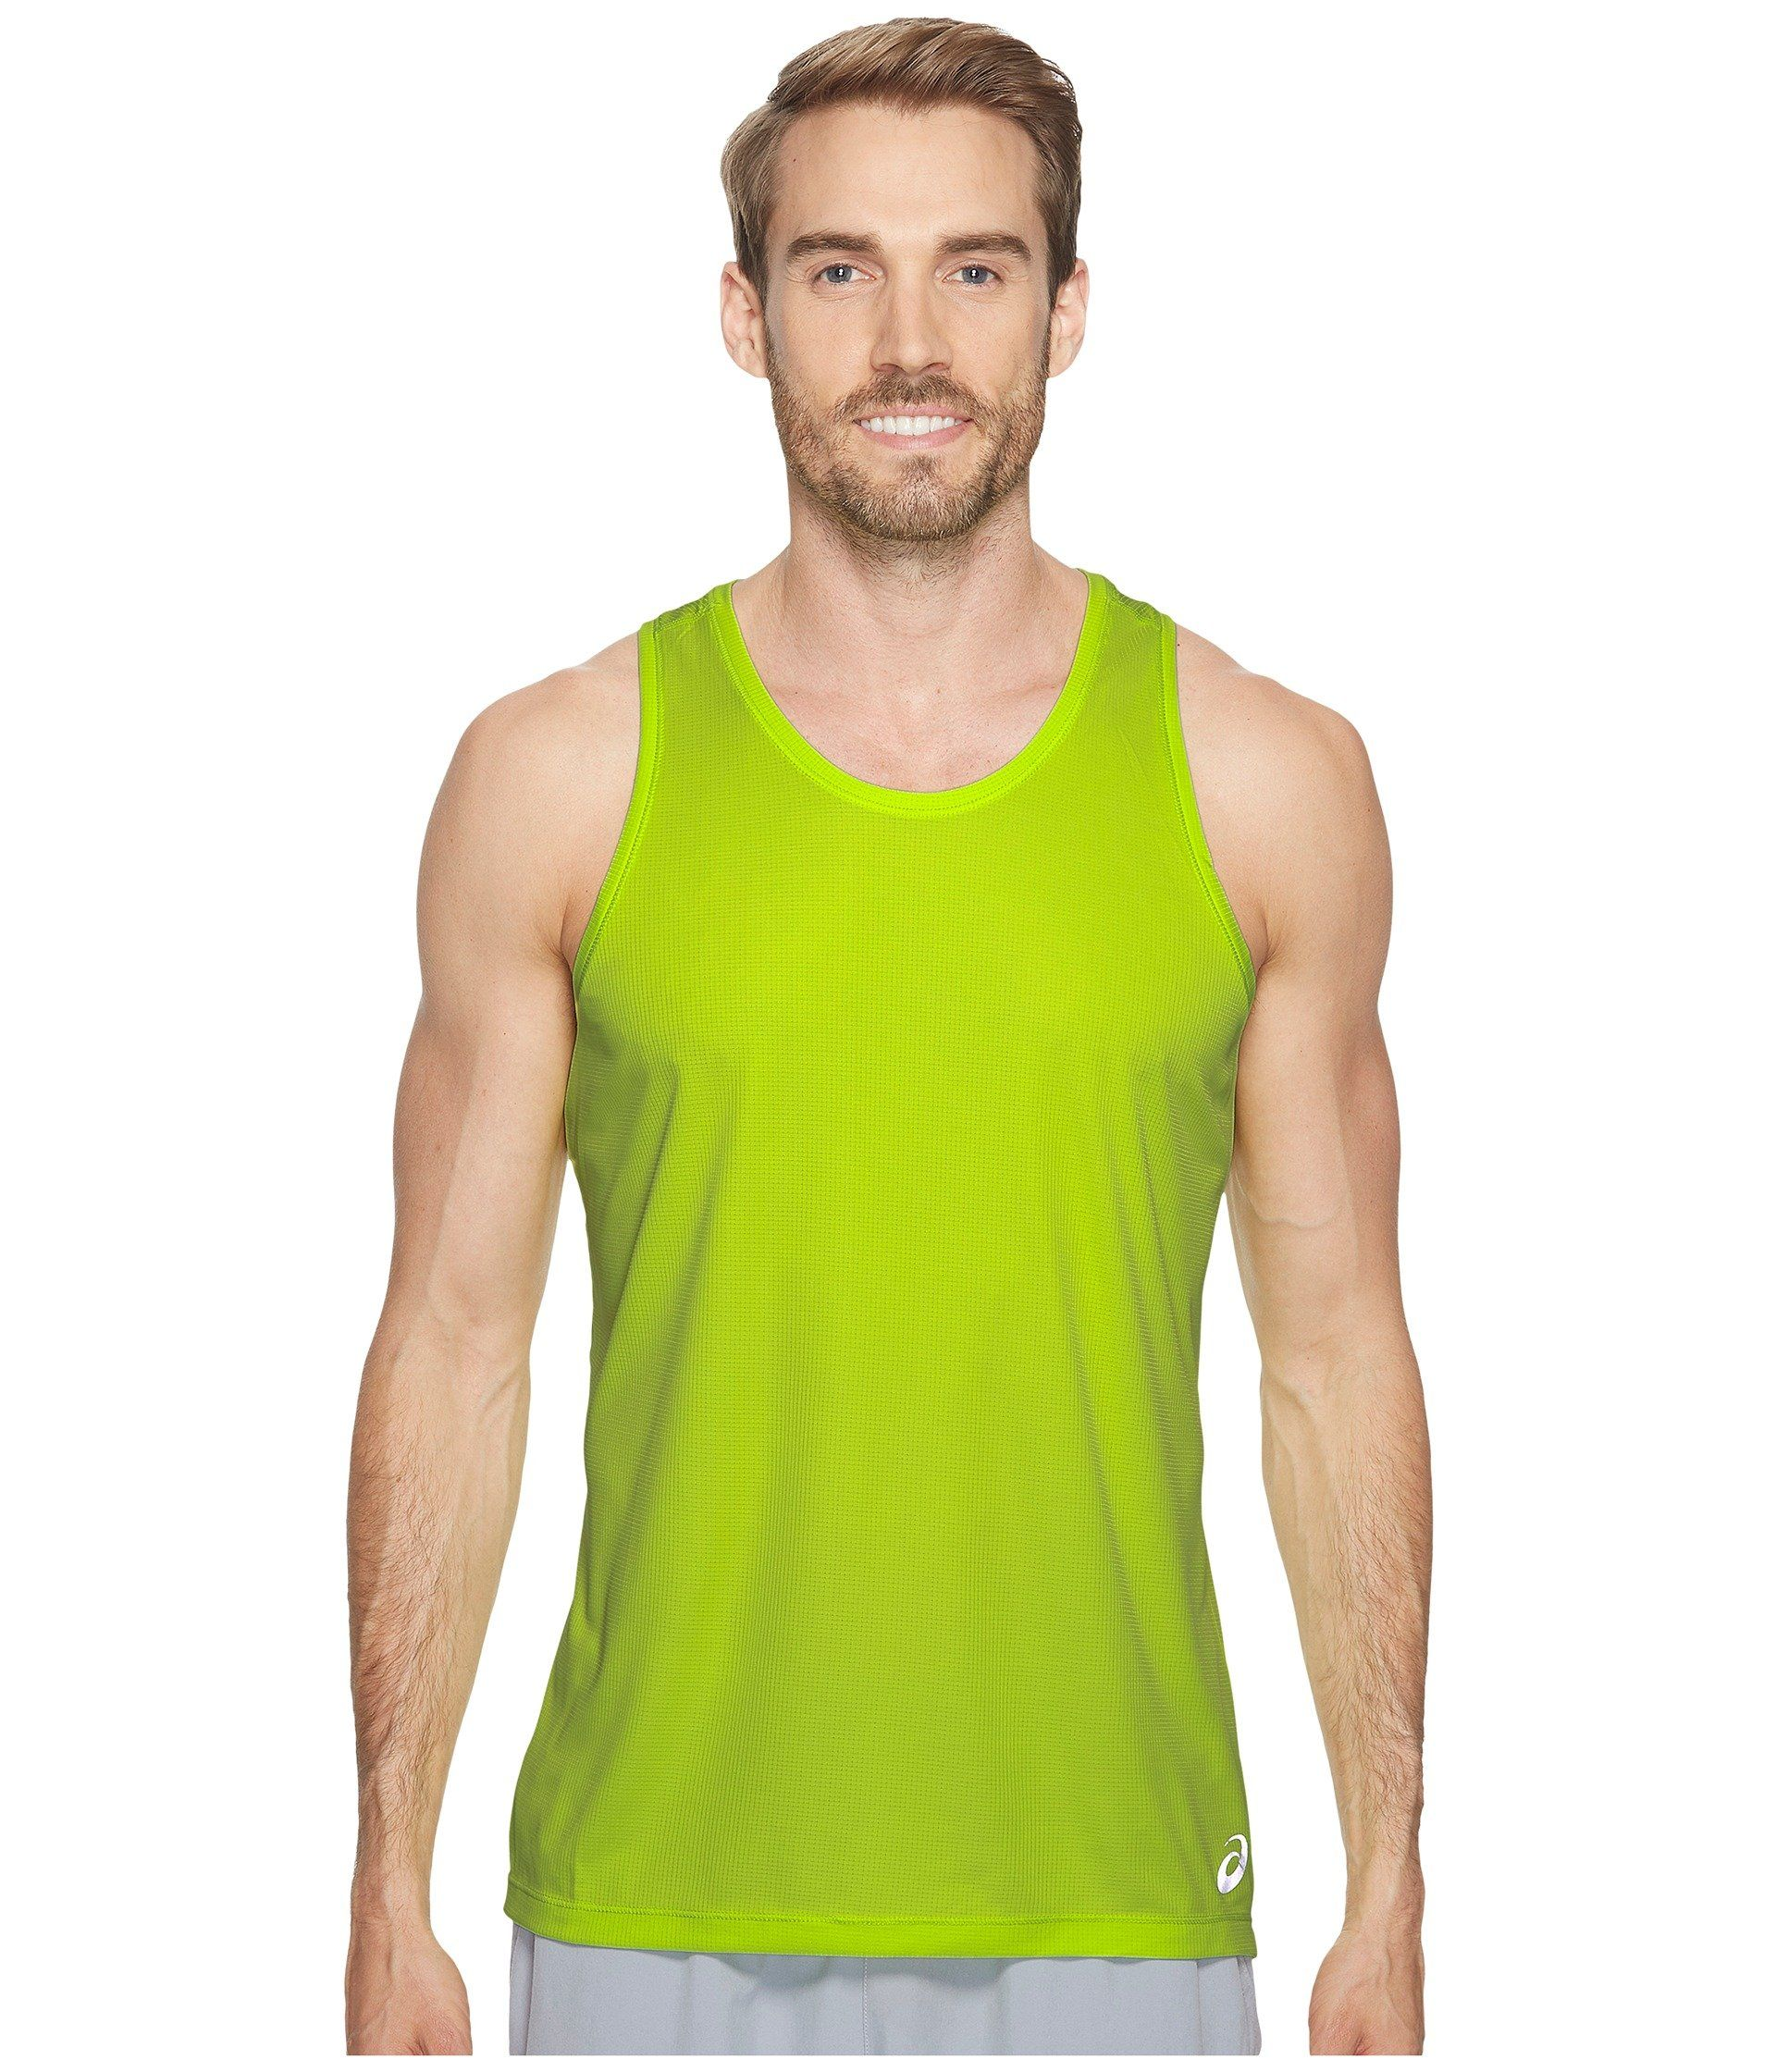 d270e417eae73 ASICS Men s Tank Top